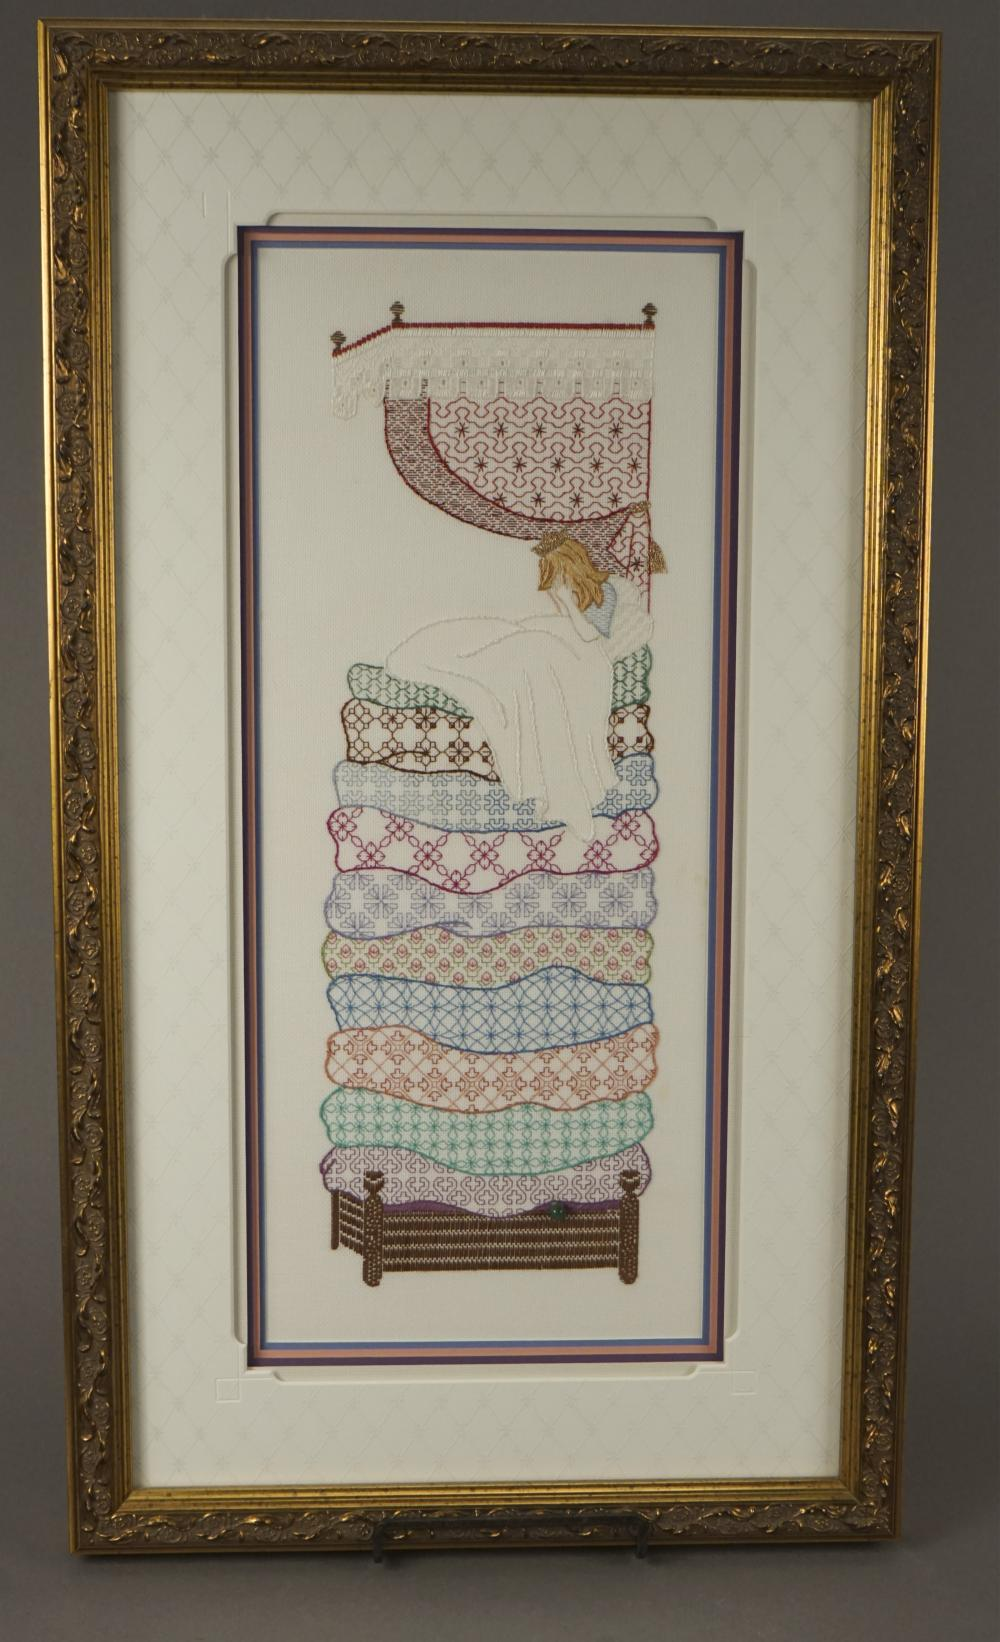 Framed Counted Thread Art by Needle Woman East